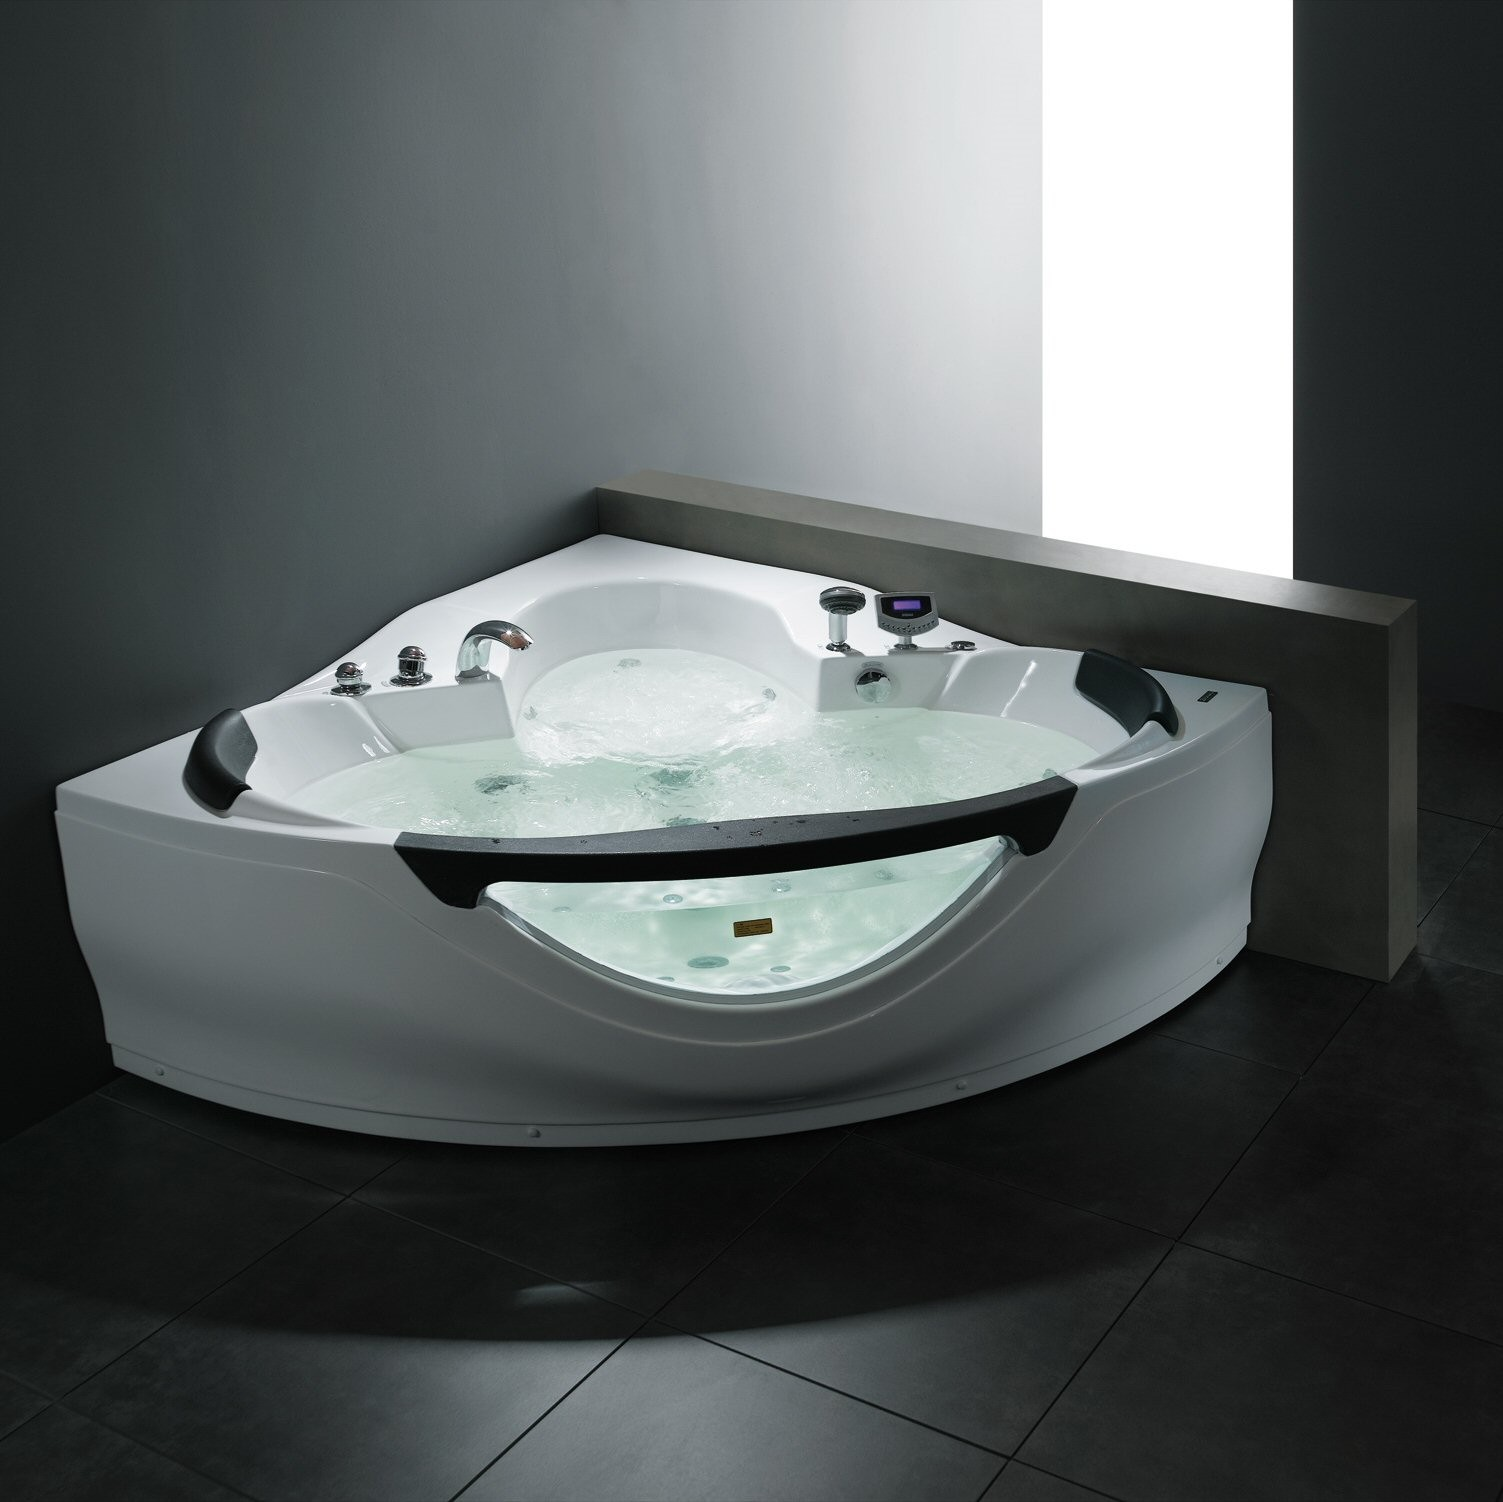 Paradise Luxury Whirlpool Tub